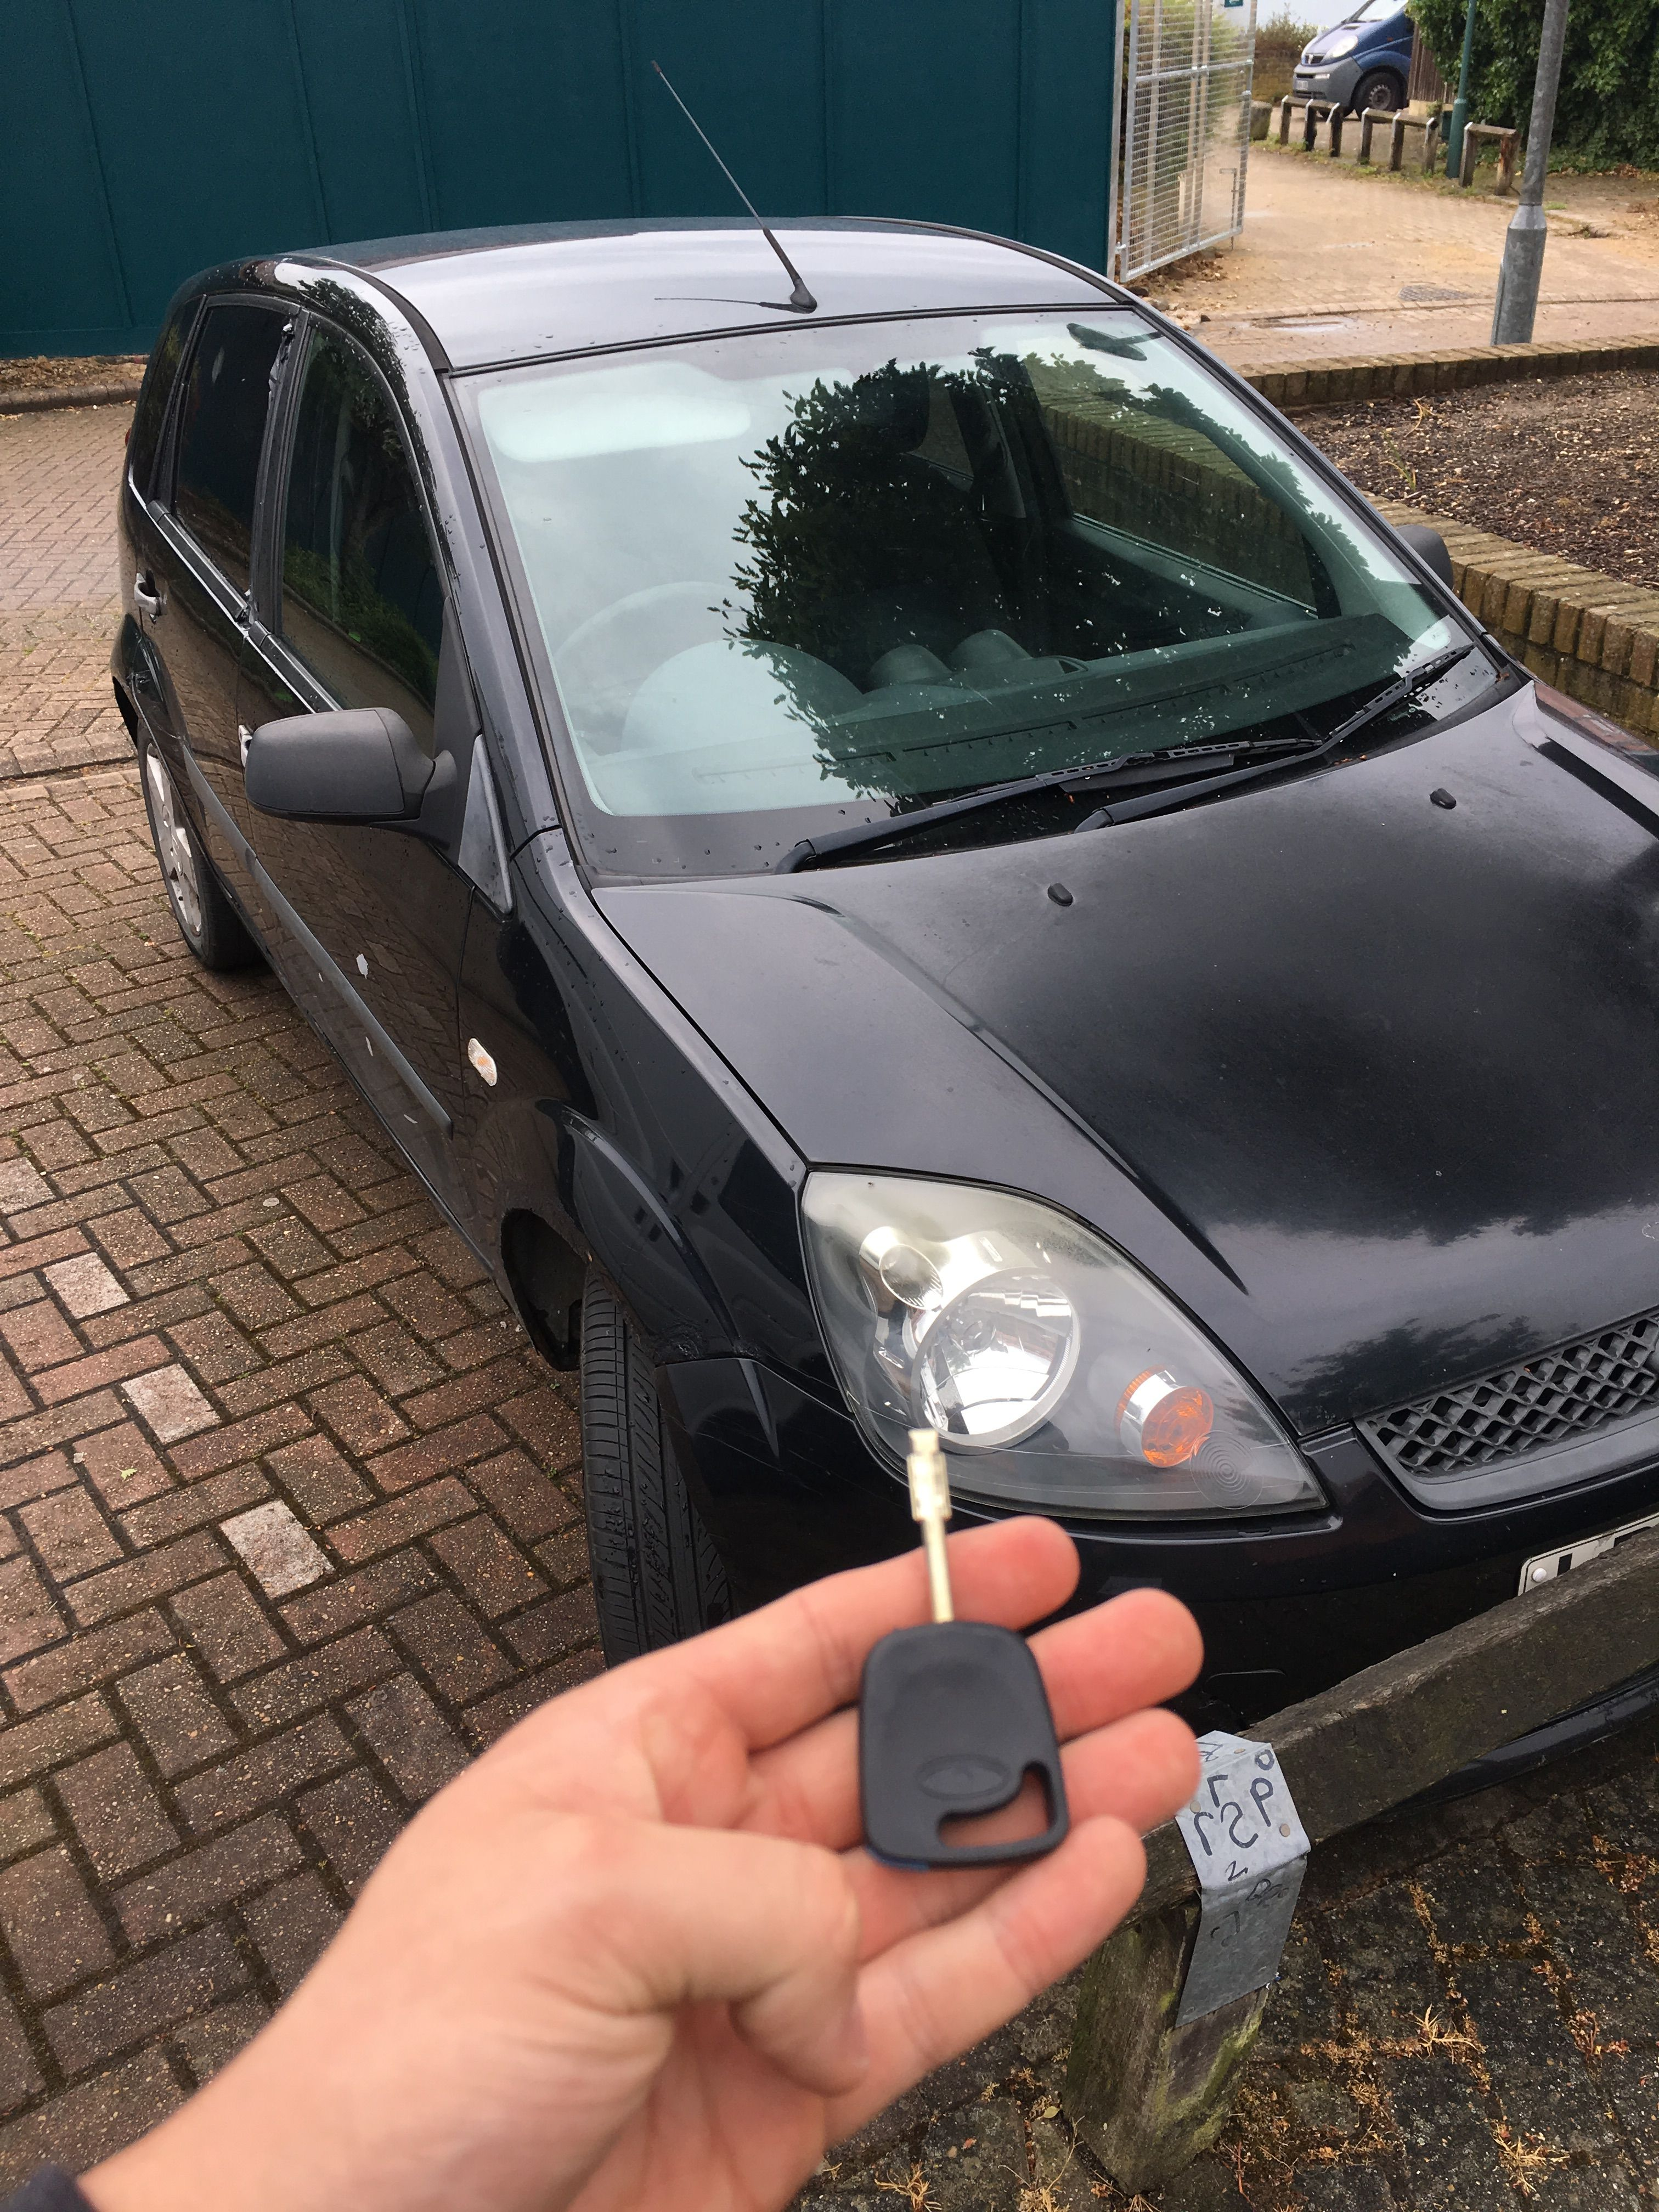 This Morning We Done A Broken Key Replacement On This Ford Fiesta